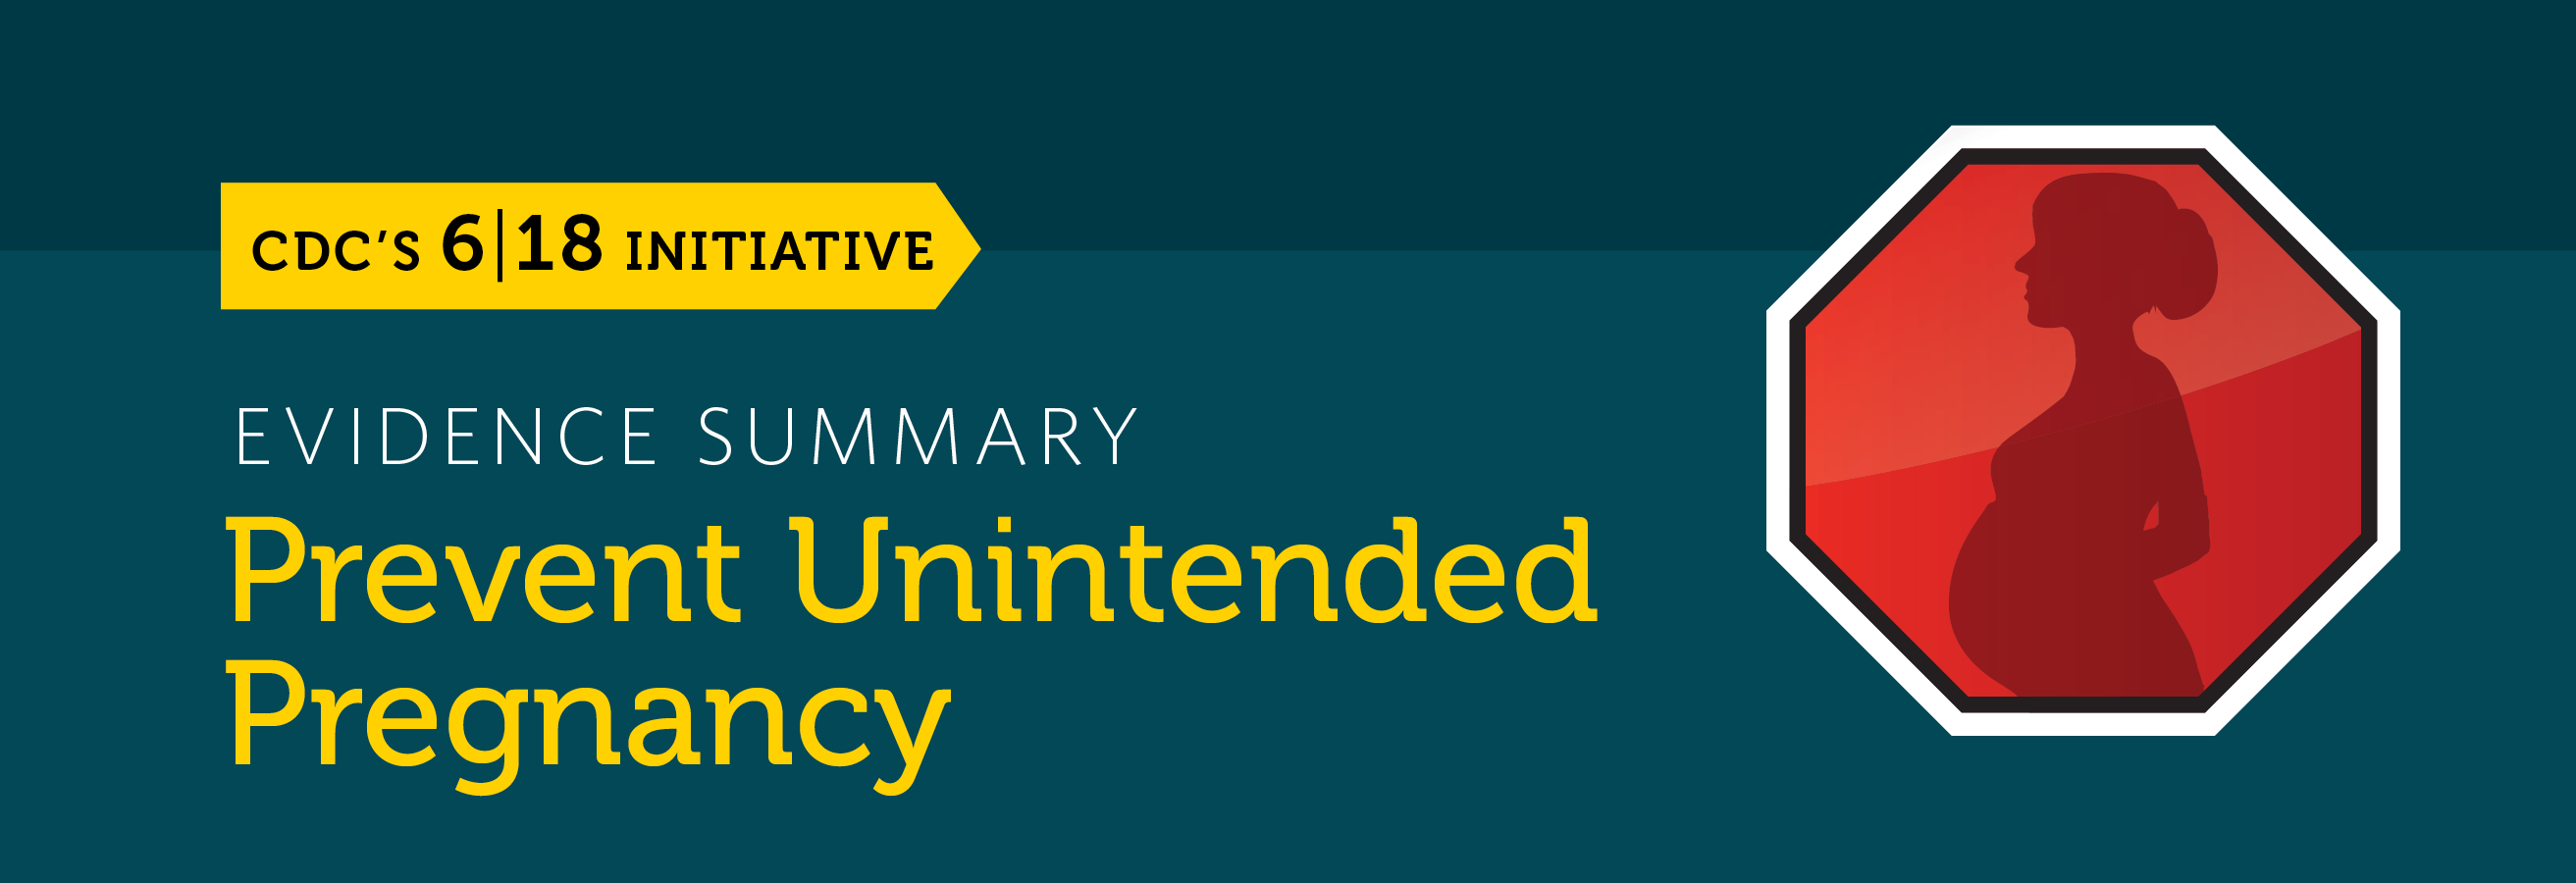 The prevent unintended pregnancy evidence summary banner.